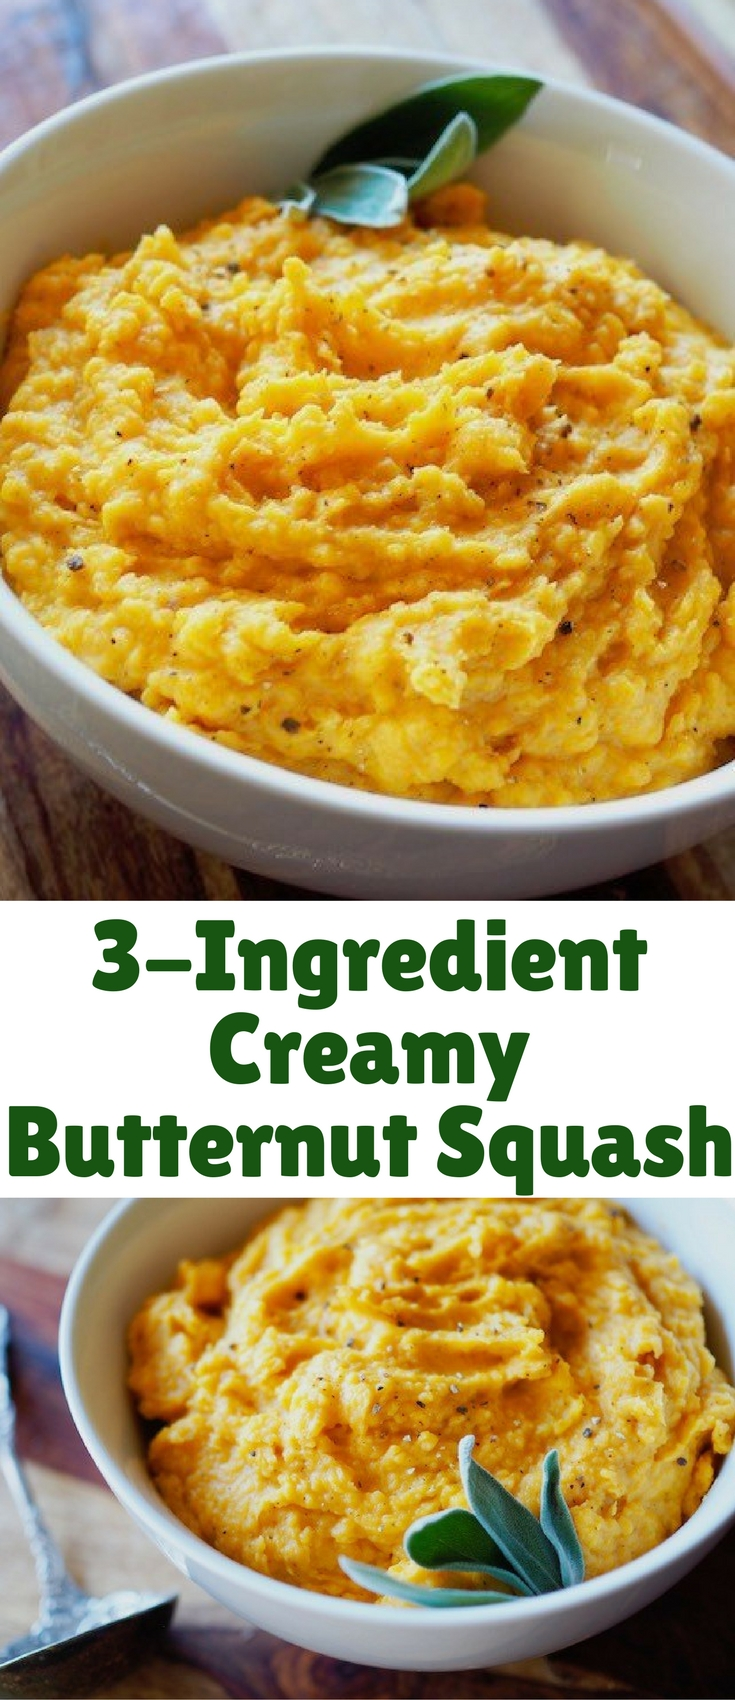 This delicious squash is super easy to make and it's packed with nutrition. Make it as a side with a savory dinner or top it with nuts for an easy breakfast!